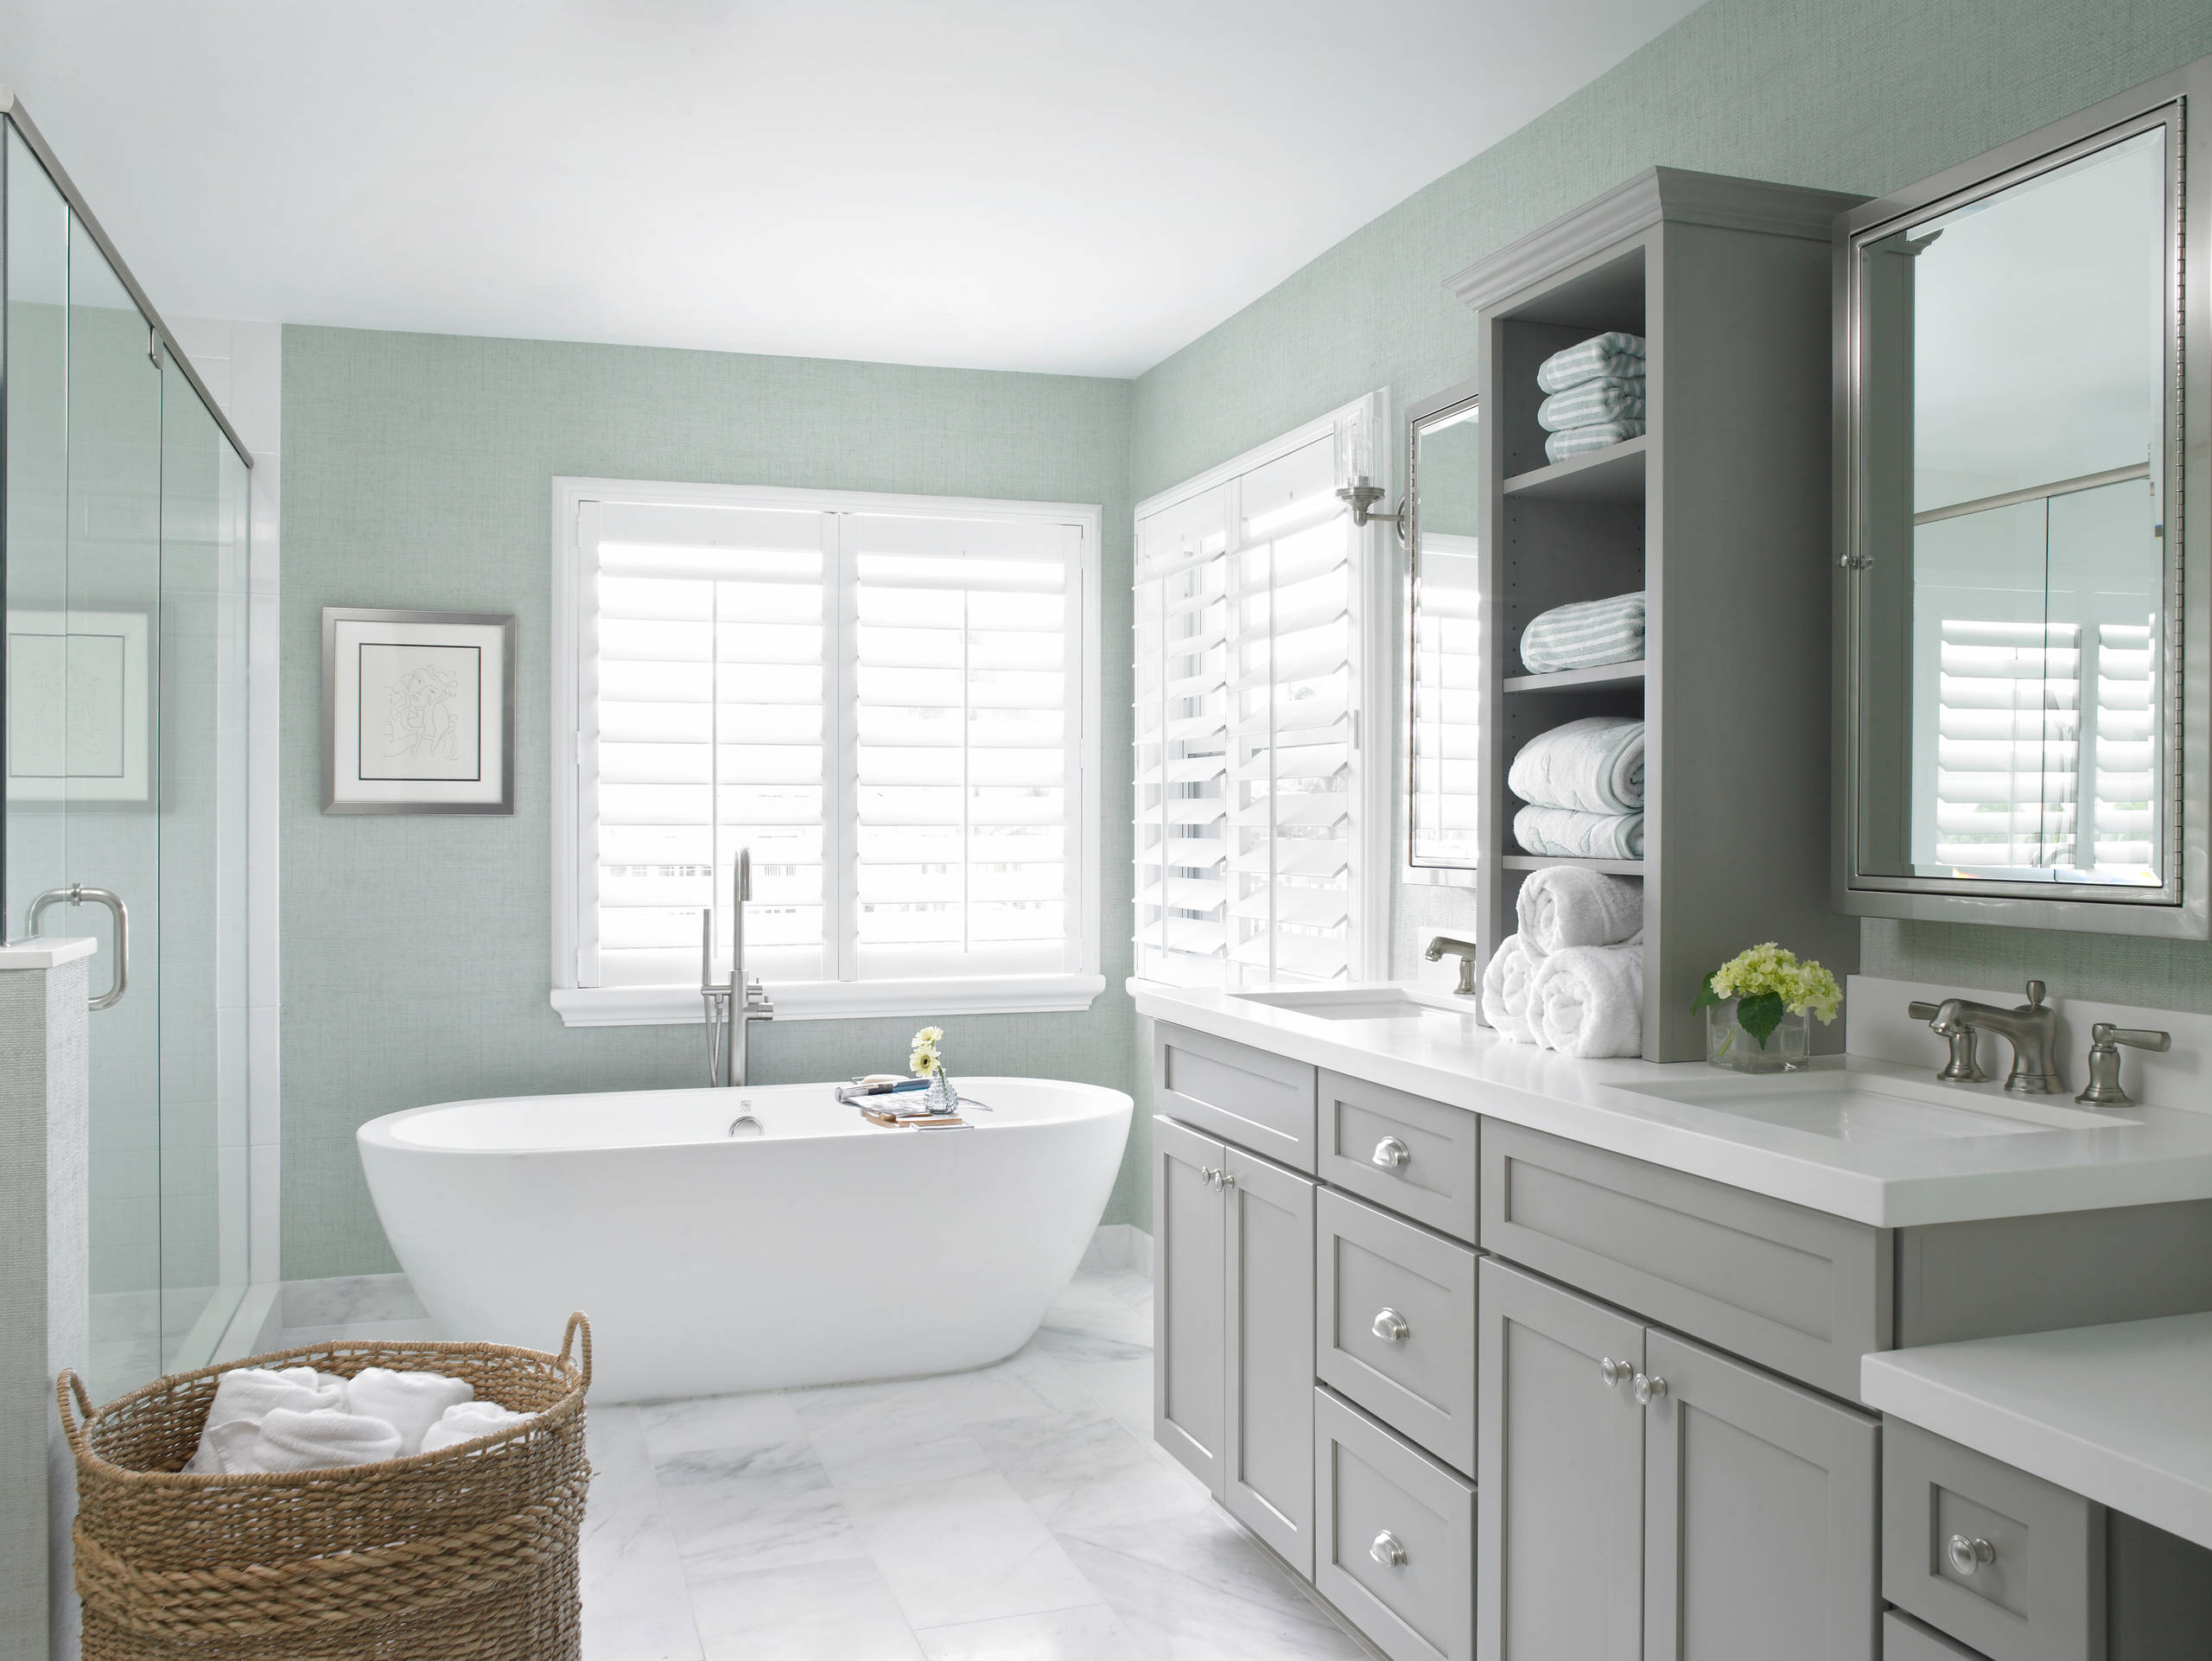 9 Beautiful Bathroom With Gray Cabinets Pictures & Ideas